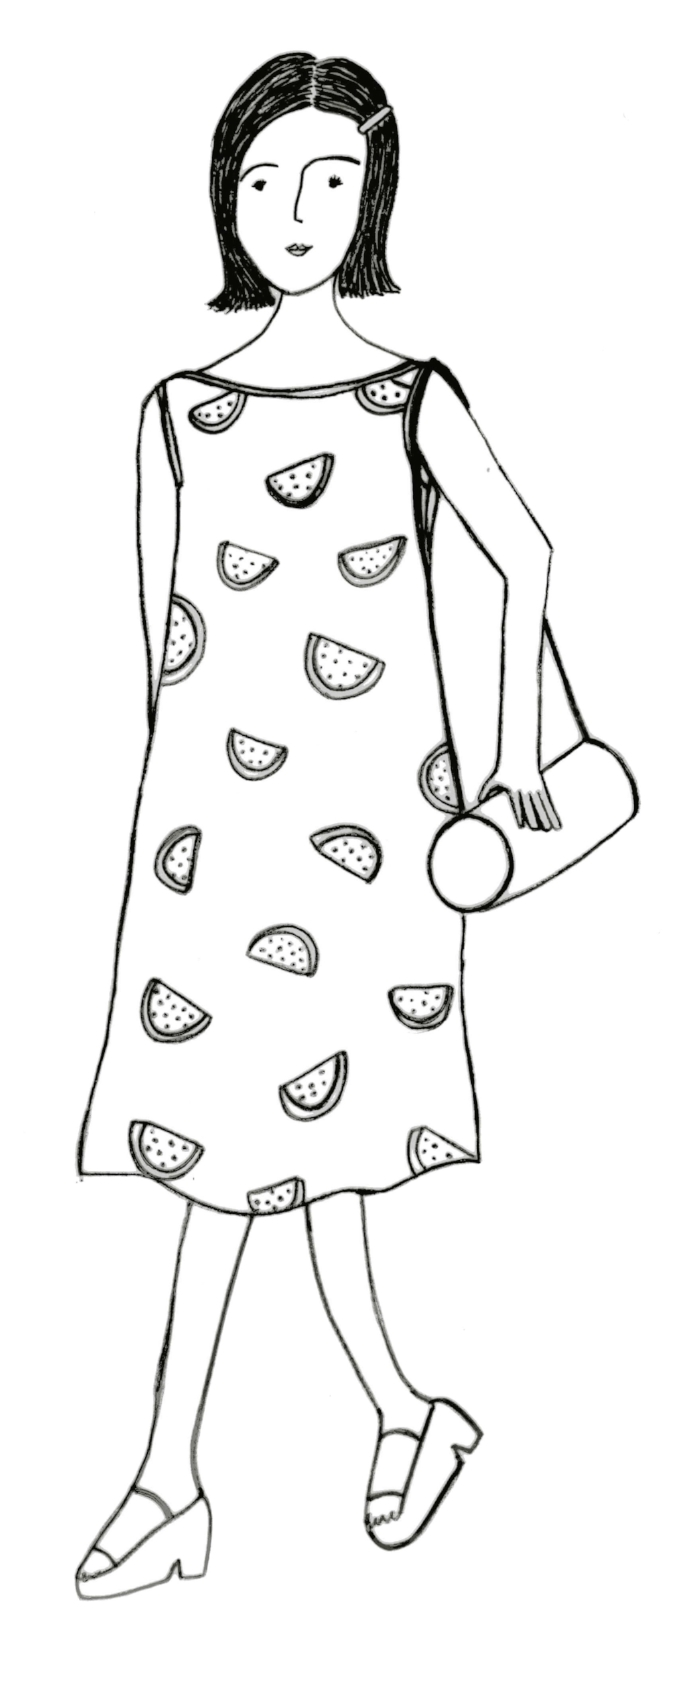 woman with watermelondress .jpg